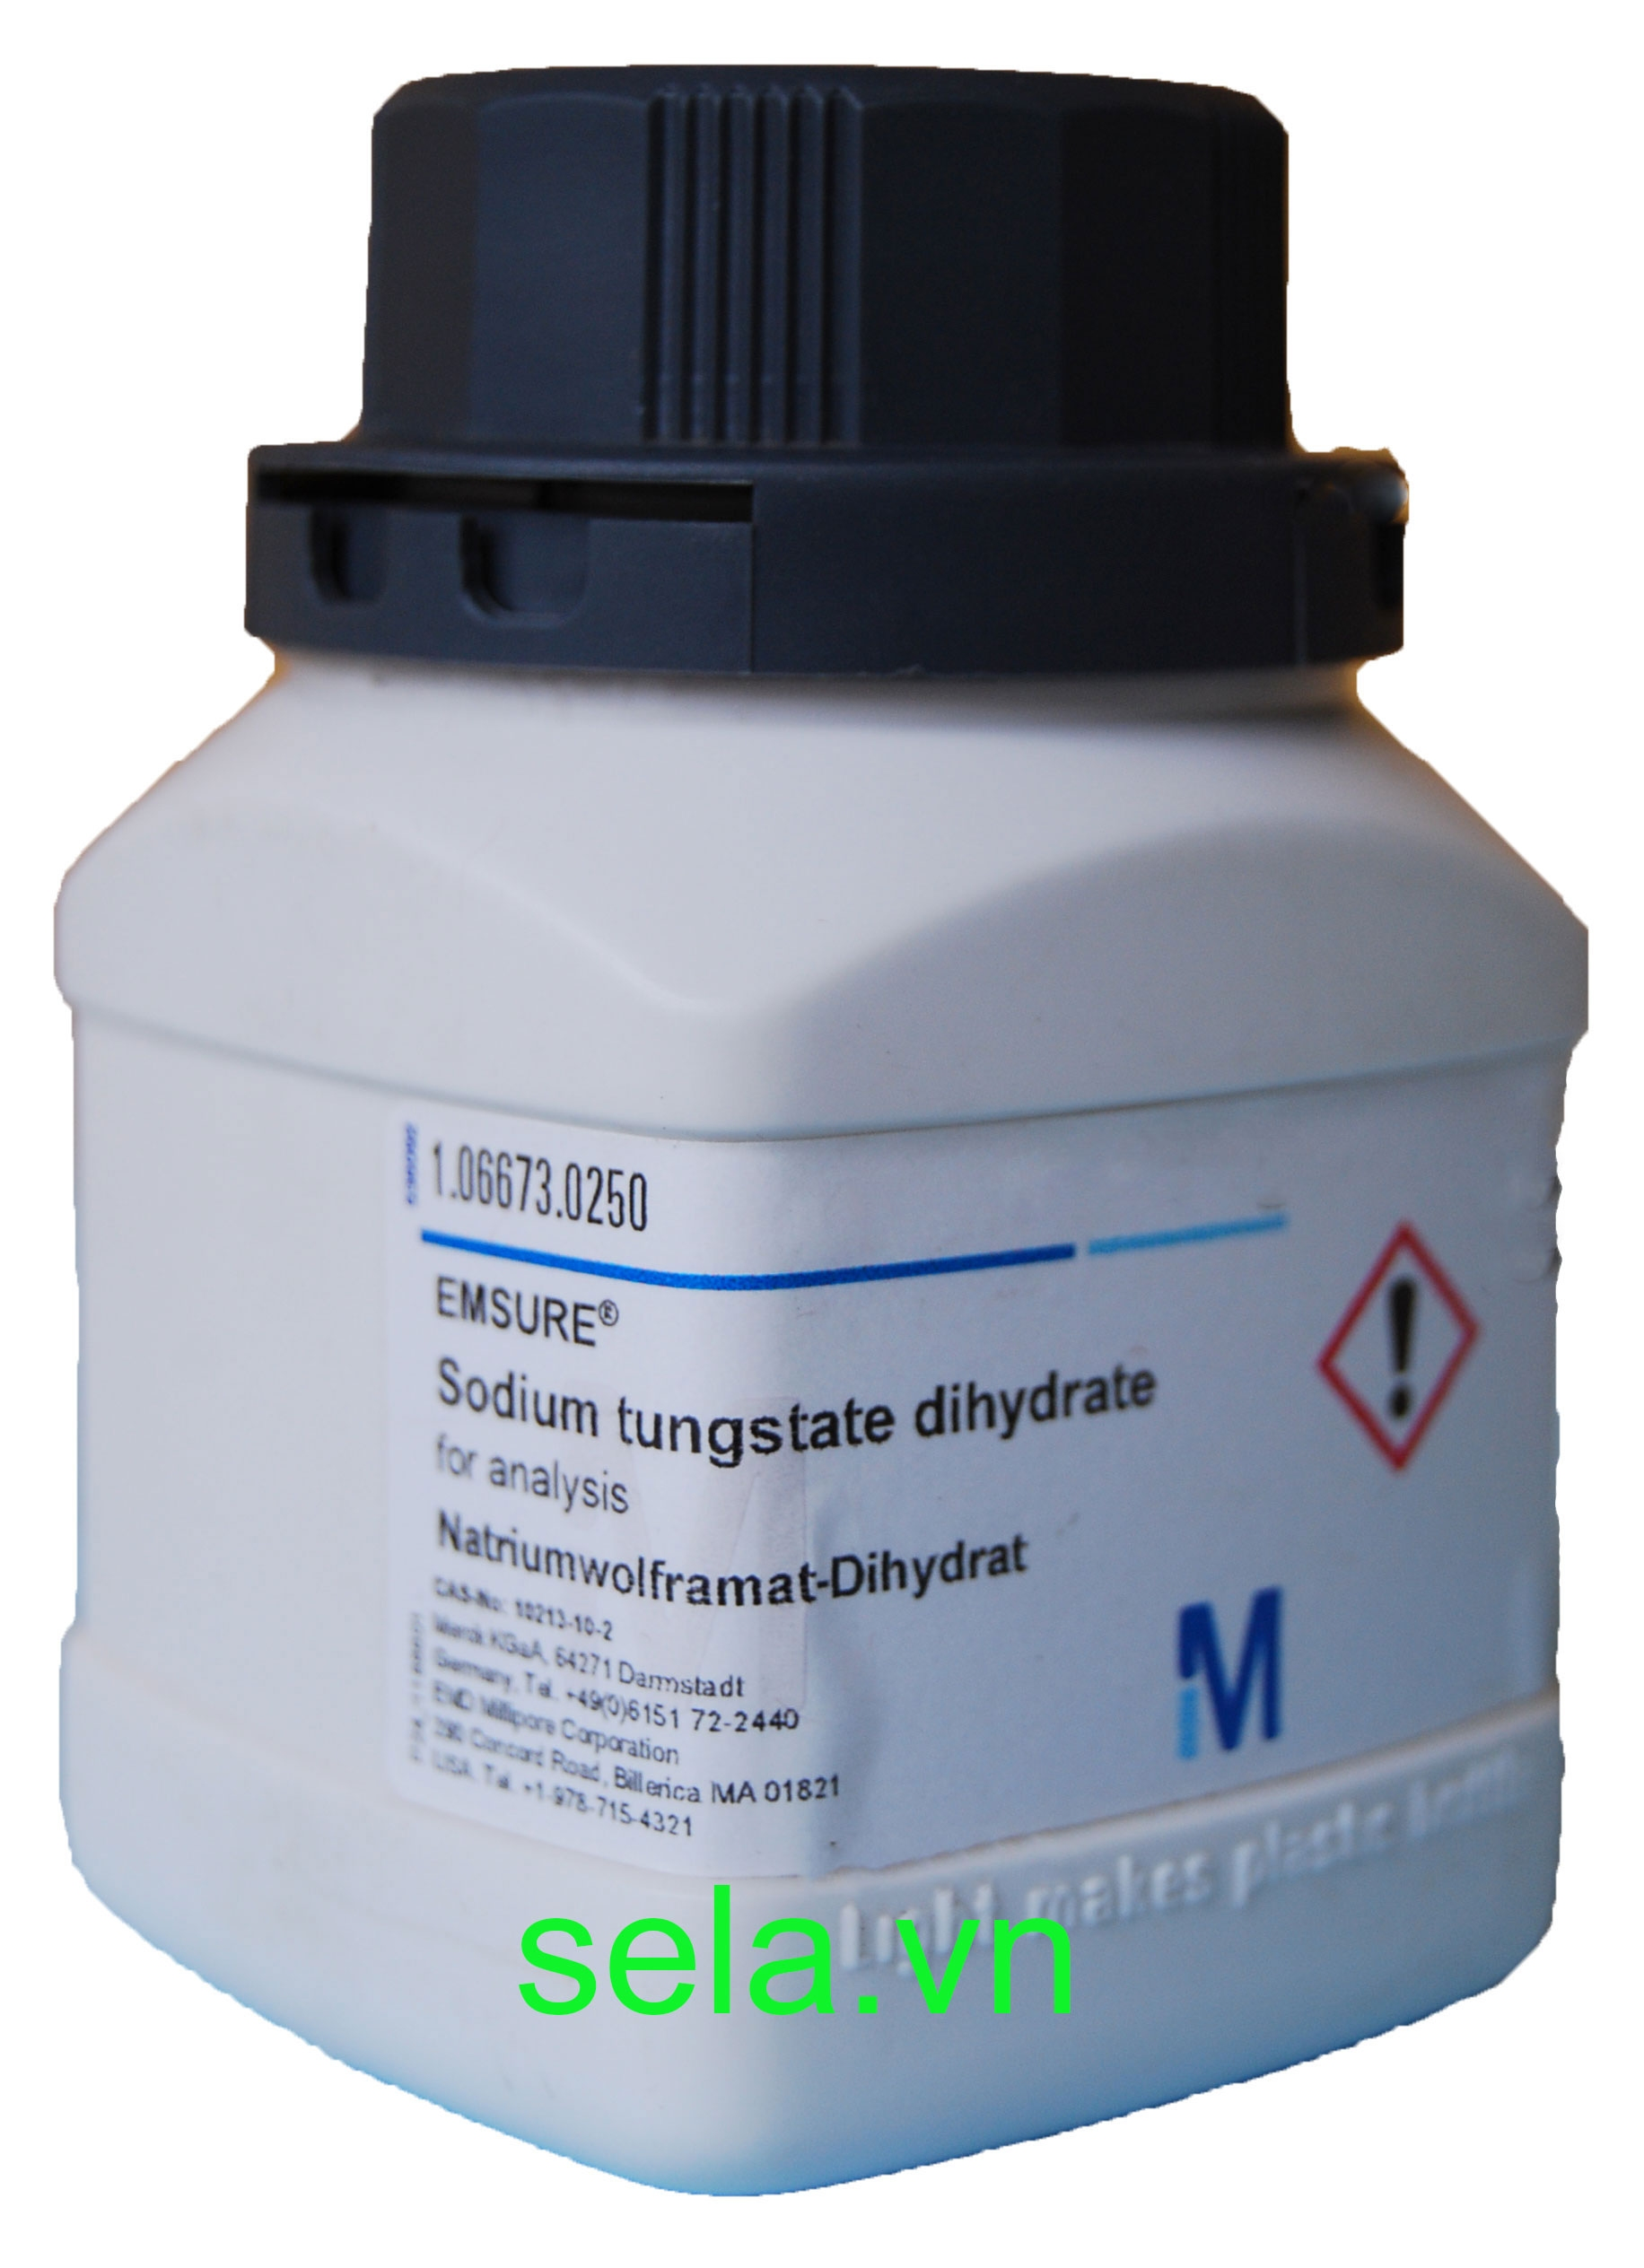 Sodium tungstate dihydrate for analysis EMSURE®